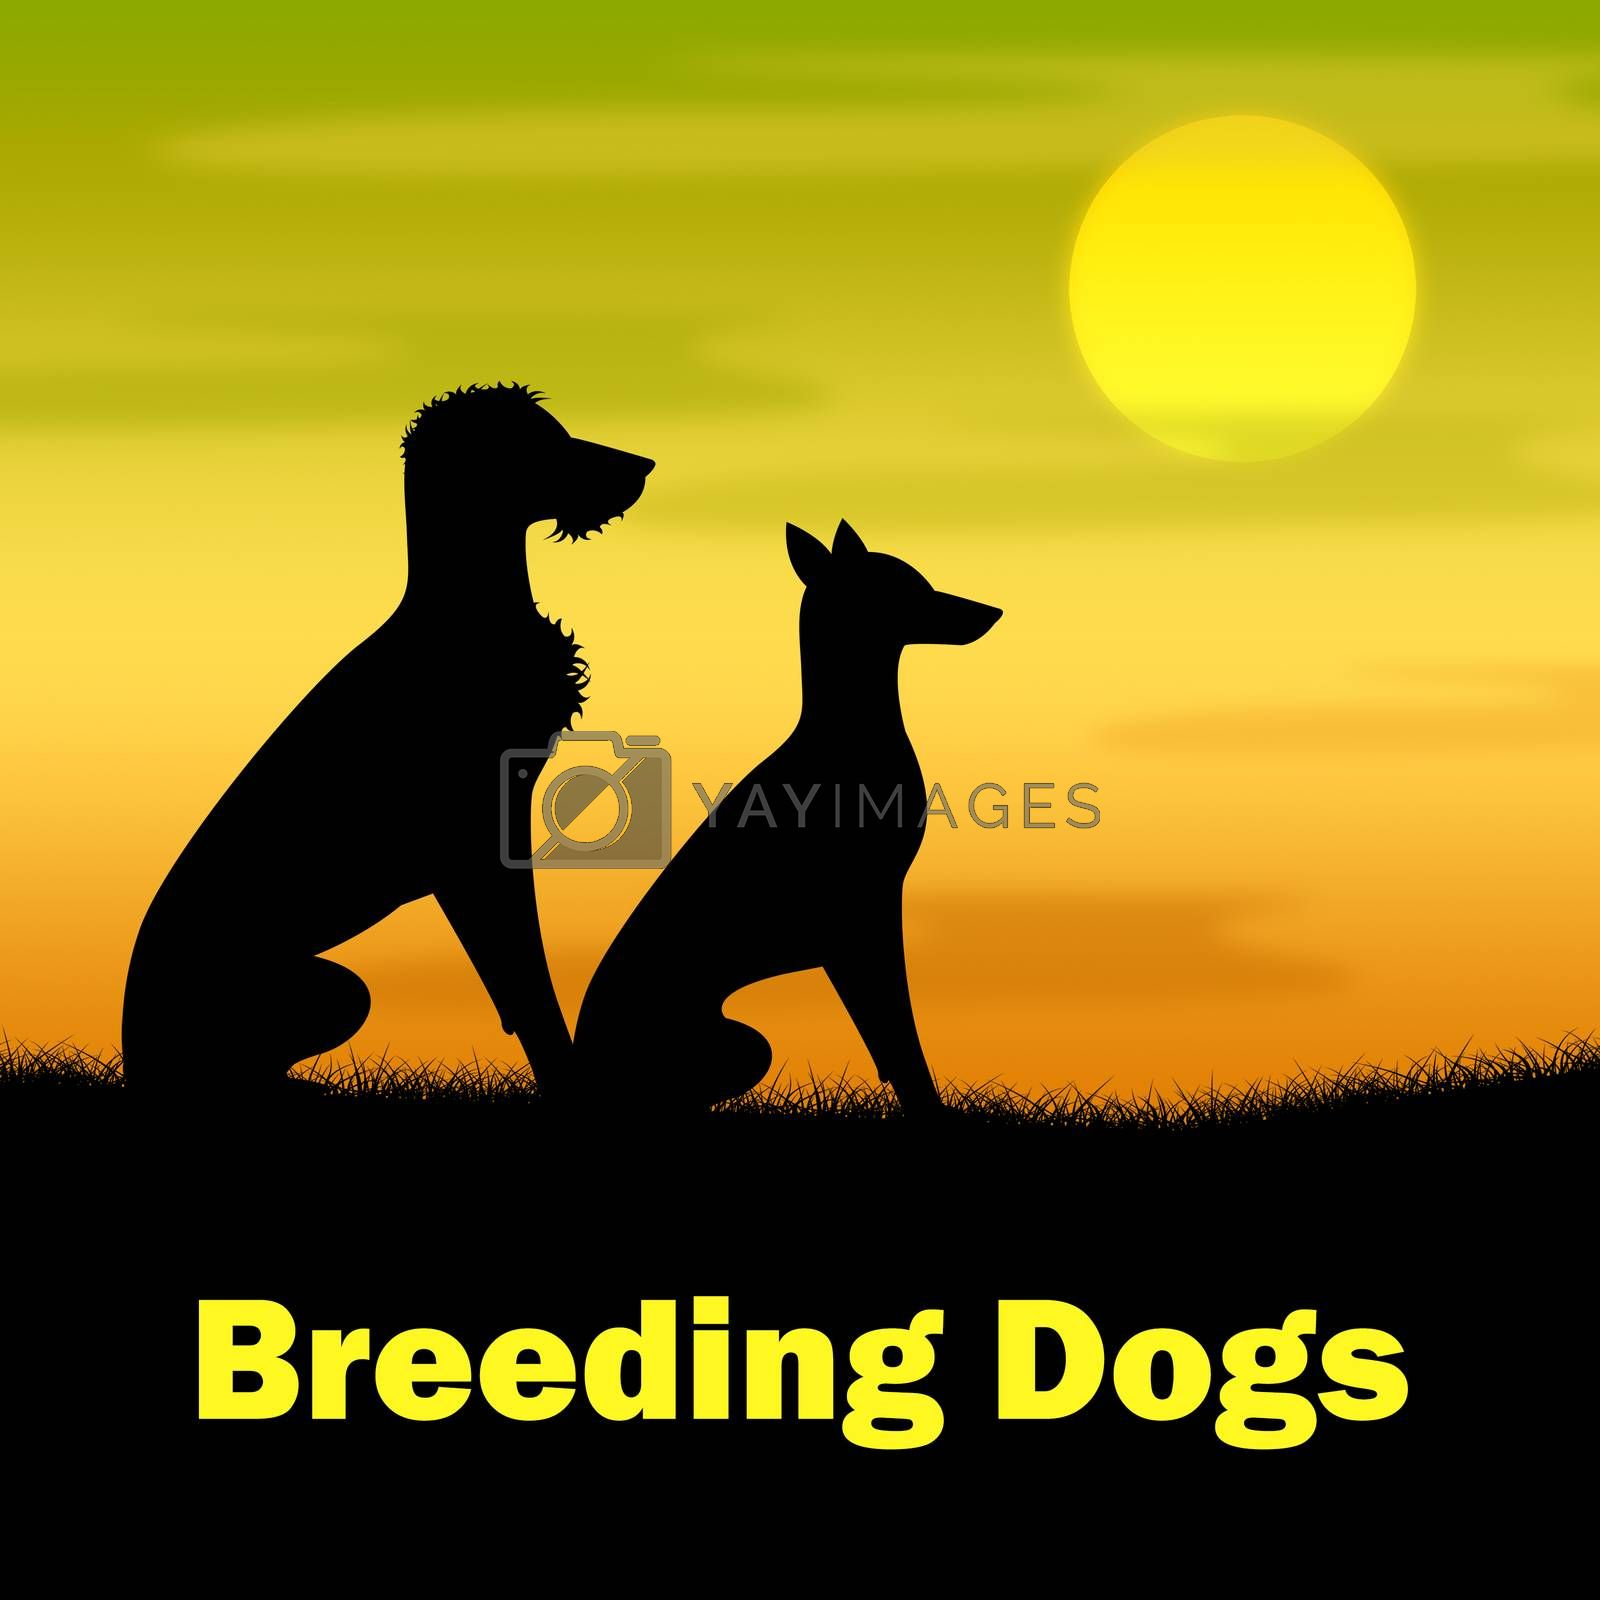 Breeding Dogs Indicating Bred Breeds And Reproducing